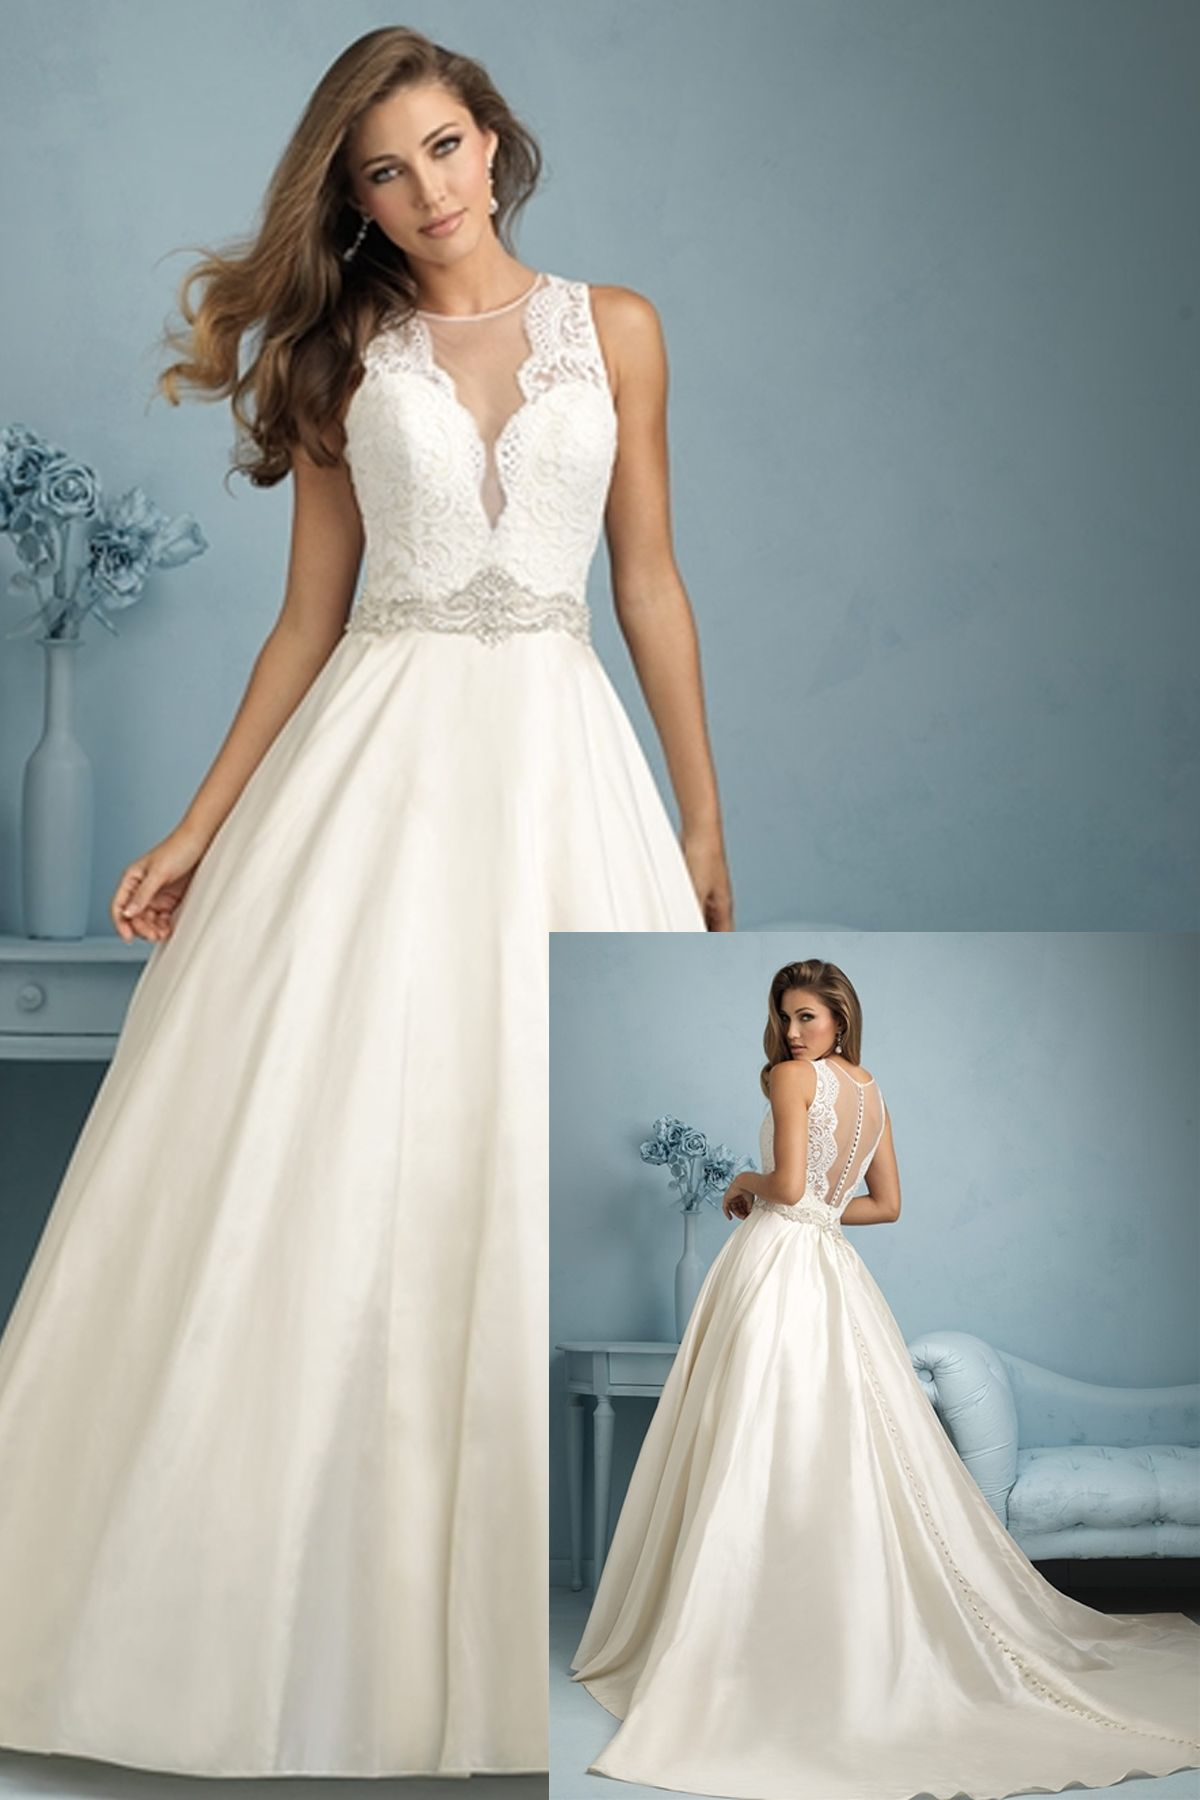 Fine Wedding Dress Shops In Oklahoma City Collection - All Wedding ...